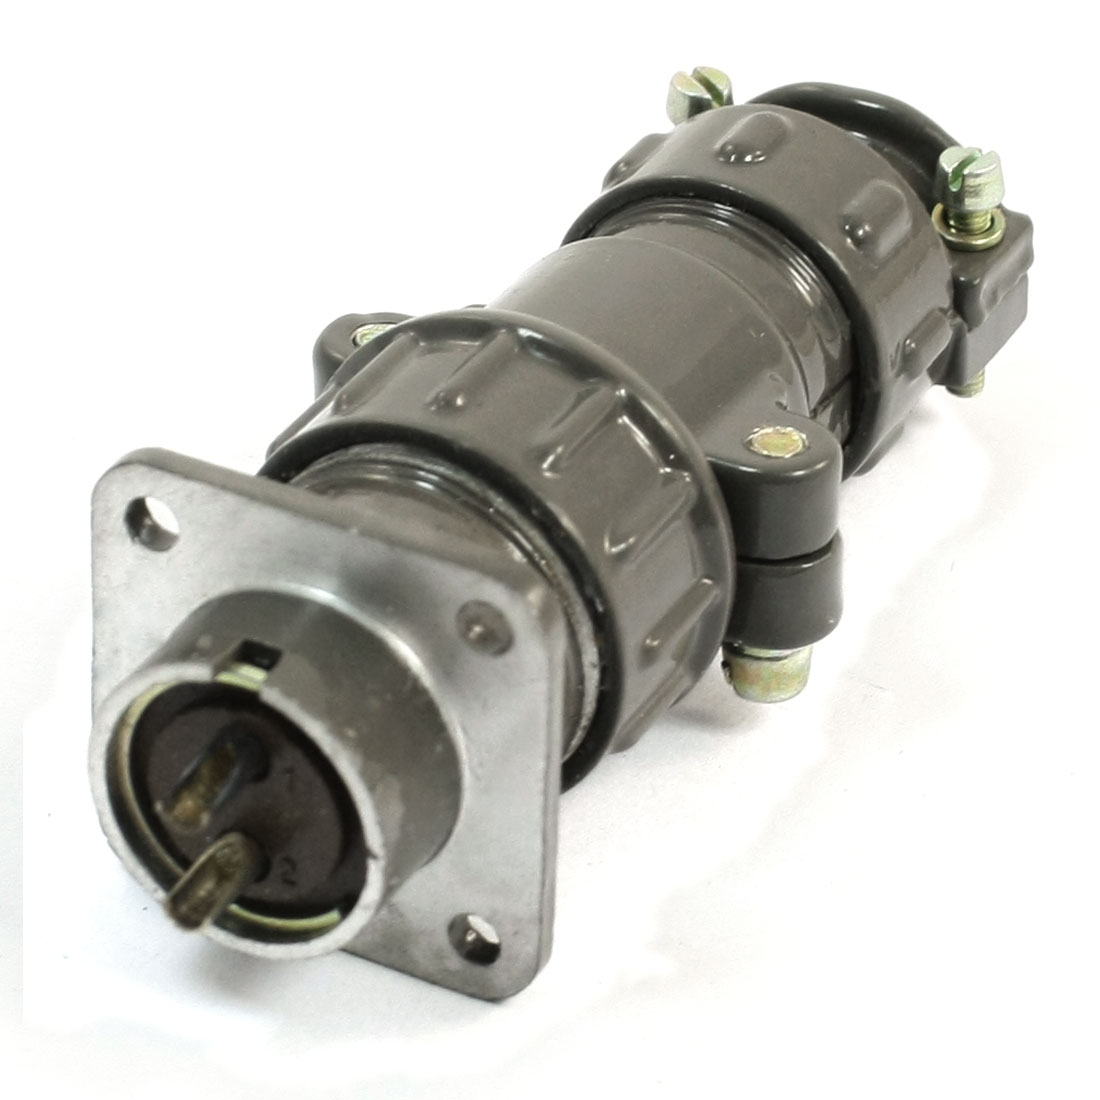 Flange-Mounting-P20-2-Core-20mm-2-Pin-CNC-Metal-Aviation-Connector